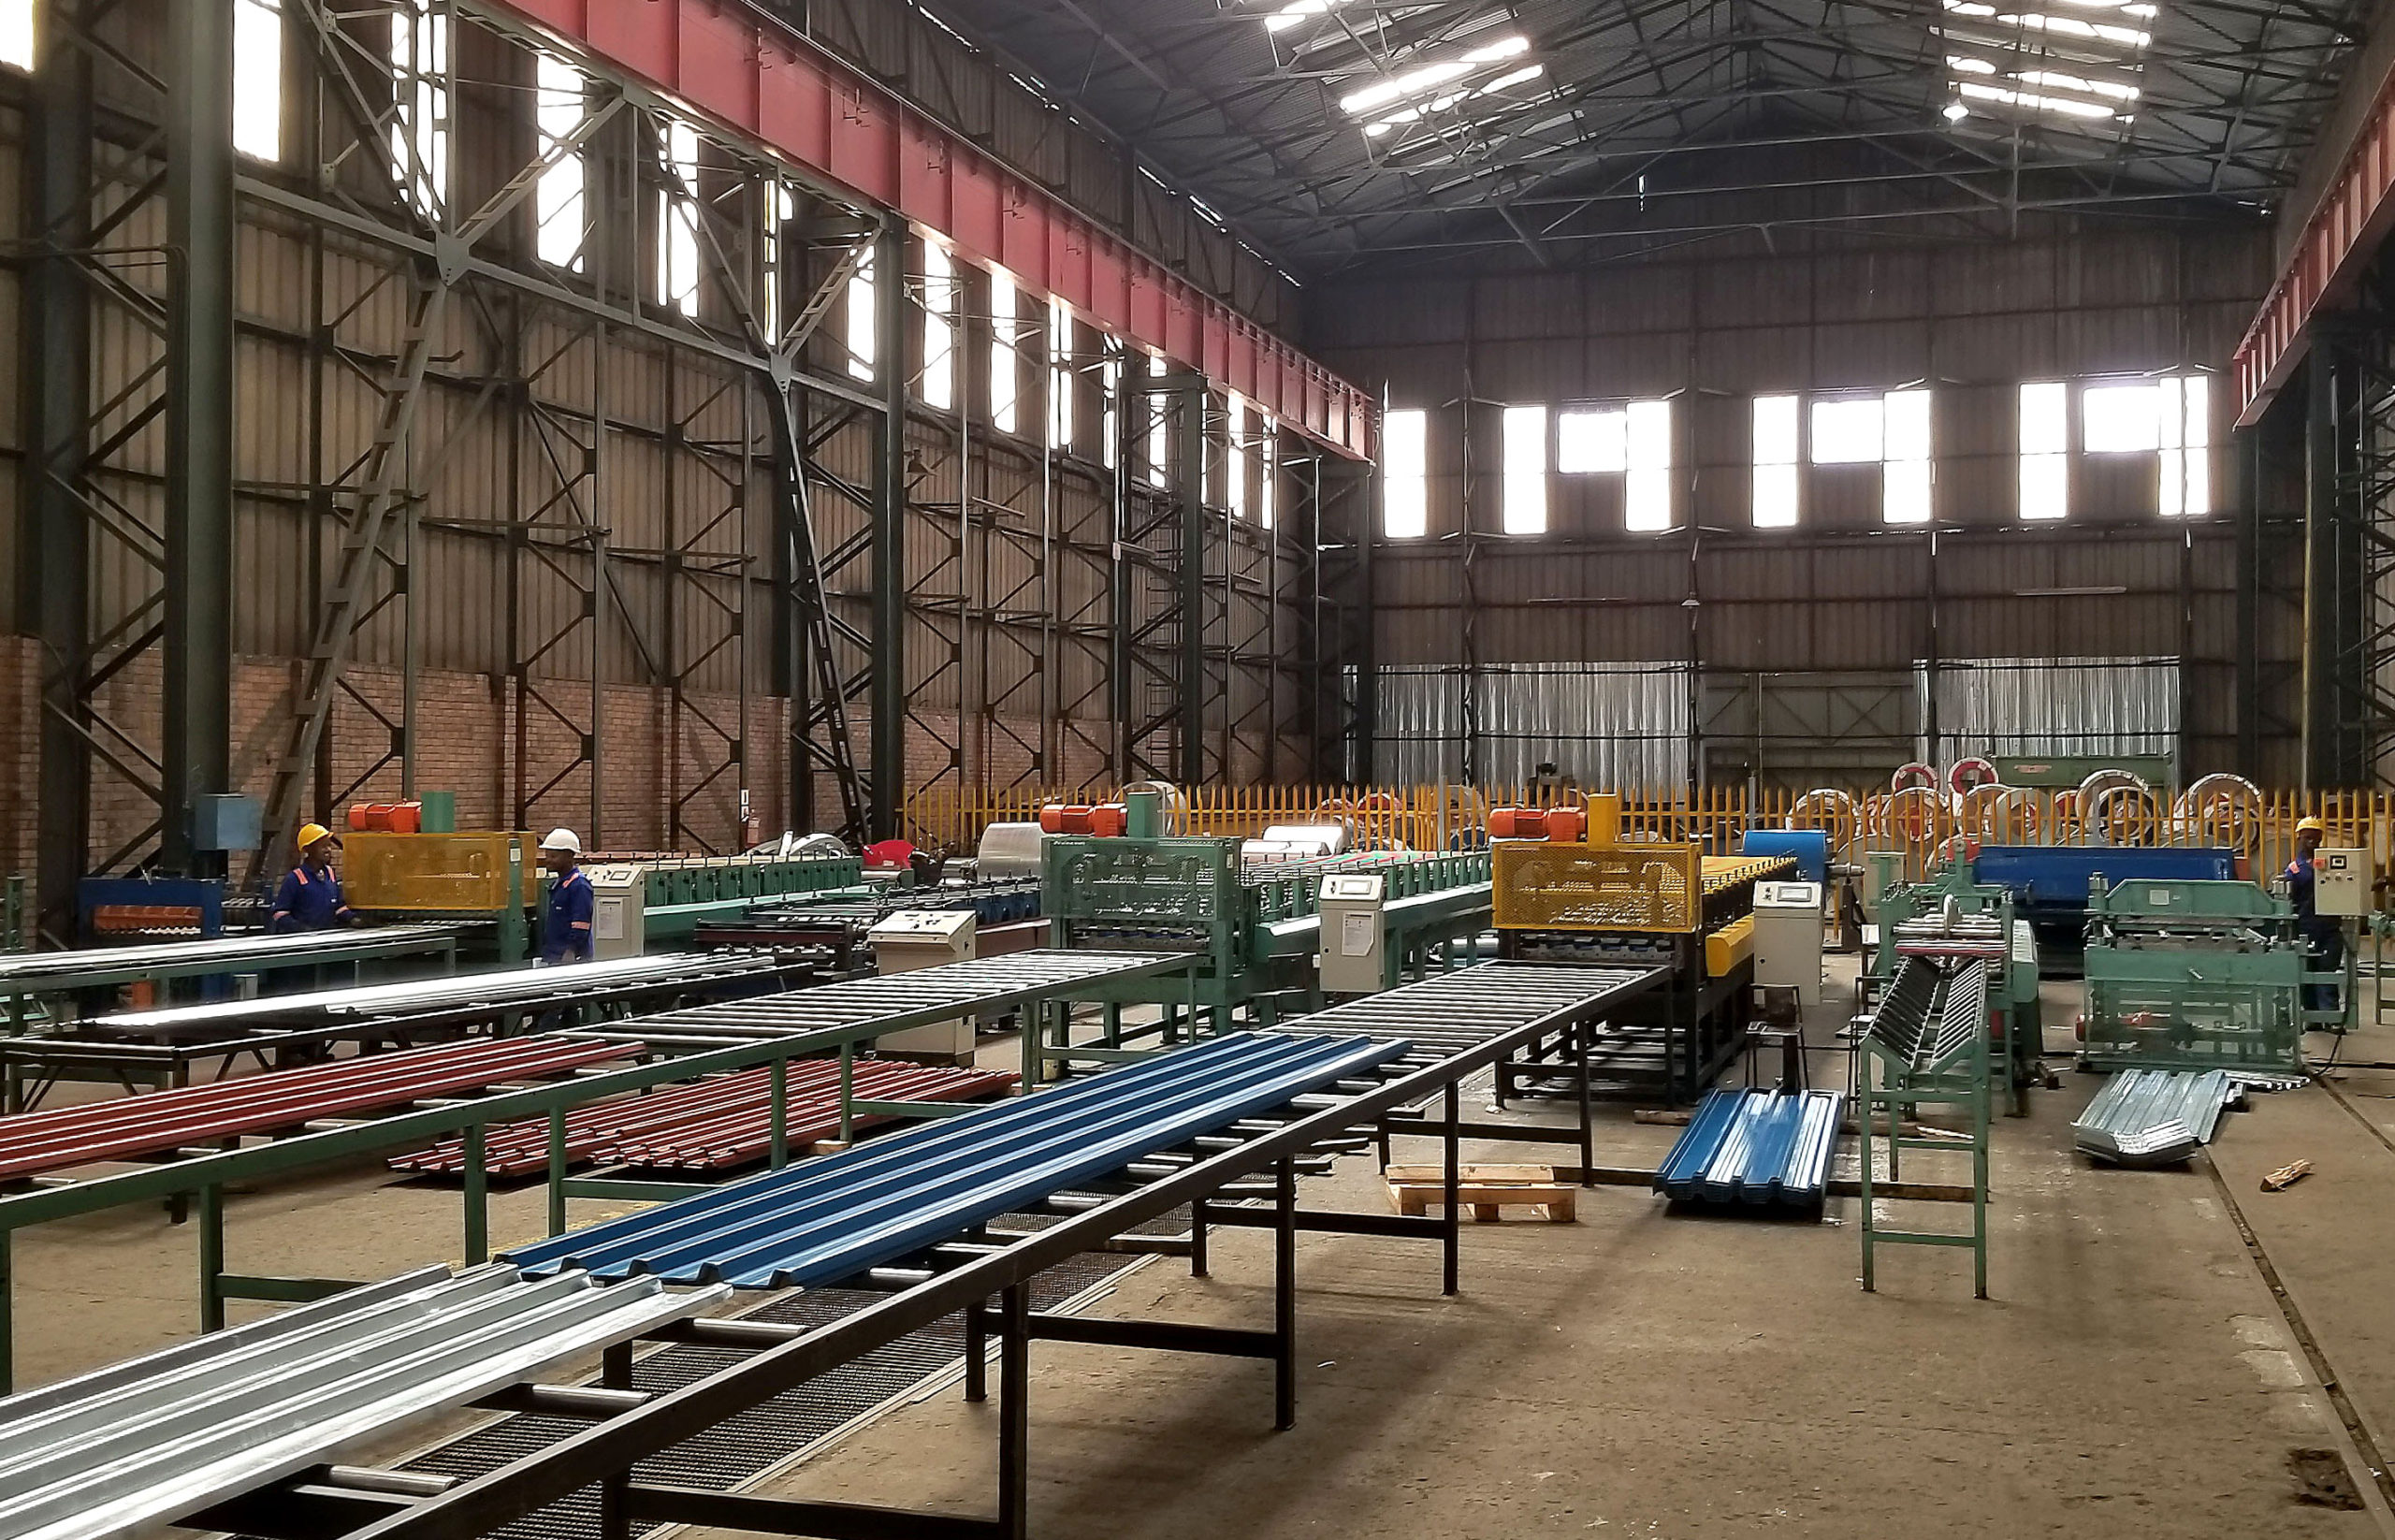 Roofing manufacturing lines at Pump and Steel Supplies